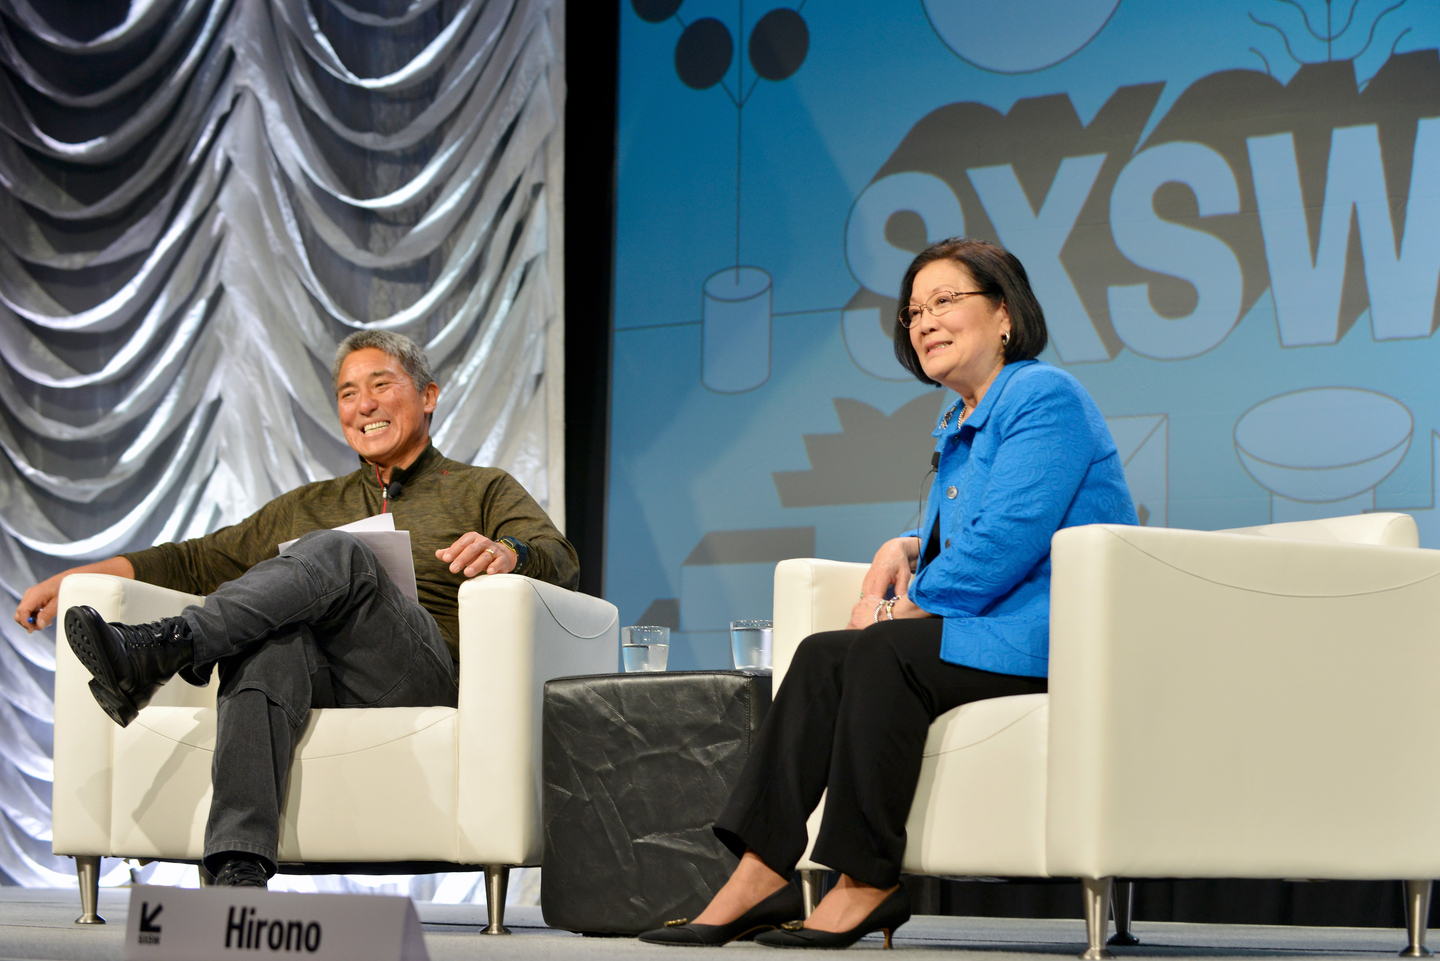 (L-R) Guy Kawasaki and Senator Mazie K. Hirono at their Featured Session - Photo by Nicola Gell/Getty Images for SXSW